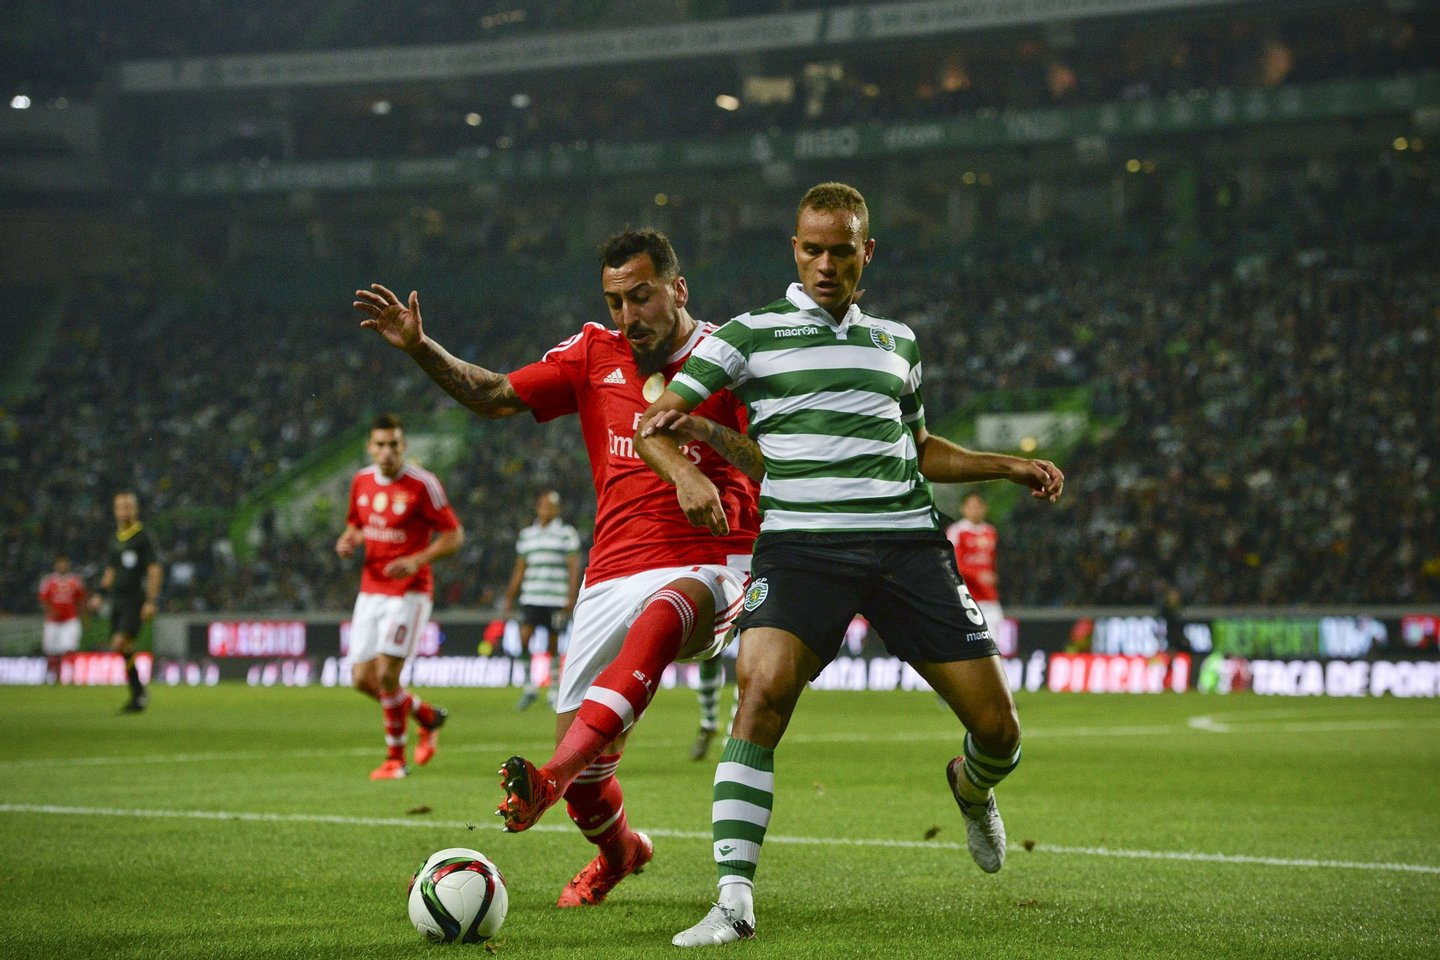 Sporting's Brazilian defender Ewerton (R) vies with Benfica's Greek forward Konstantinos Mitroglou (L) during the Portuguese Cup football match Sporting CP vs SL Benfica Alvalade stadium in Lisbon on November 21, 2015. AFP PHOTO / PATRICIA DE MELO MOREIRA (Photo credit should read PATRICIA DE MELO MOREIRA/AFP/Getty Images)